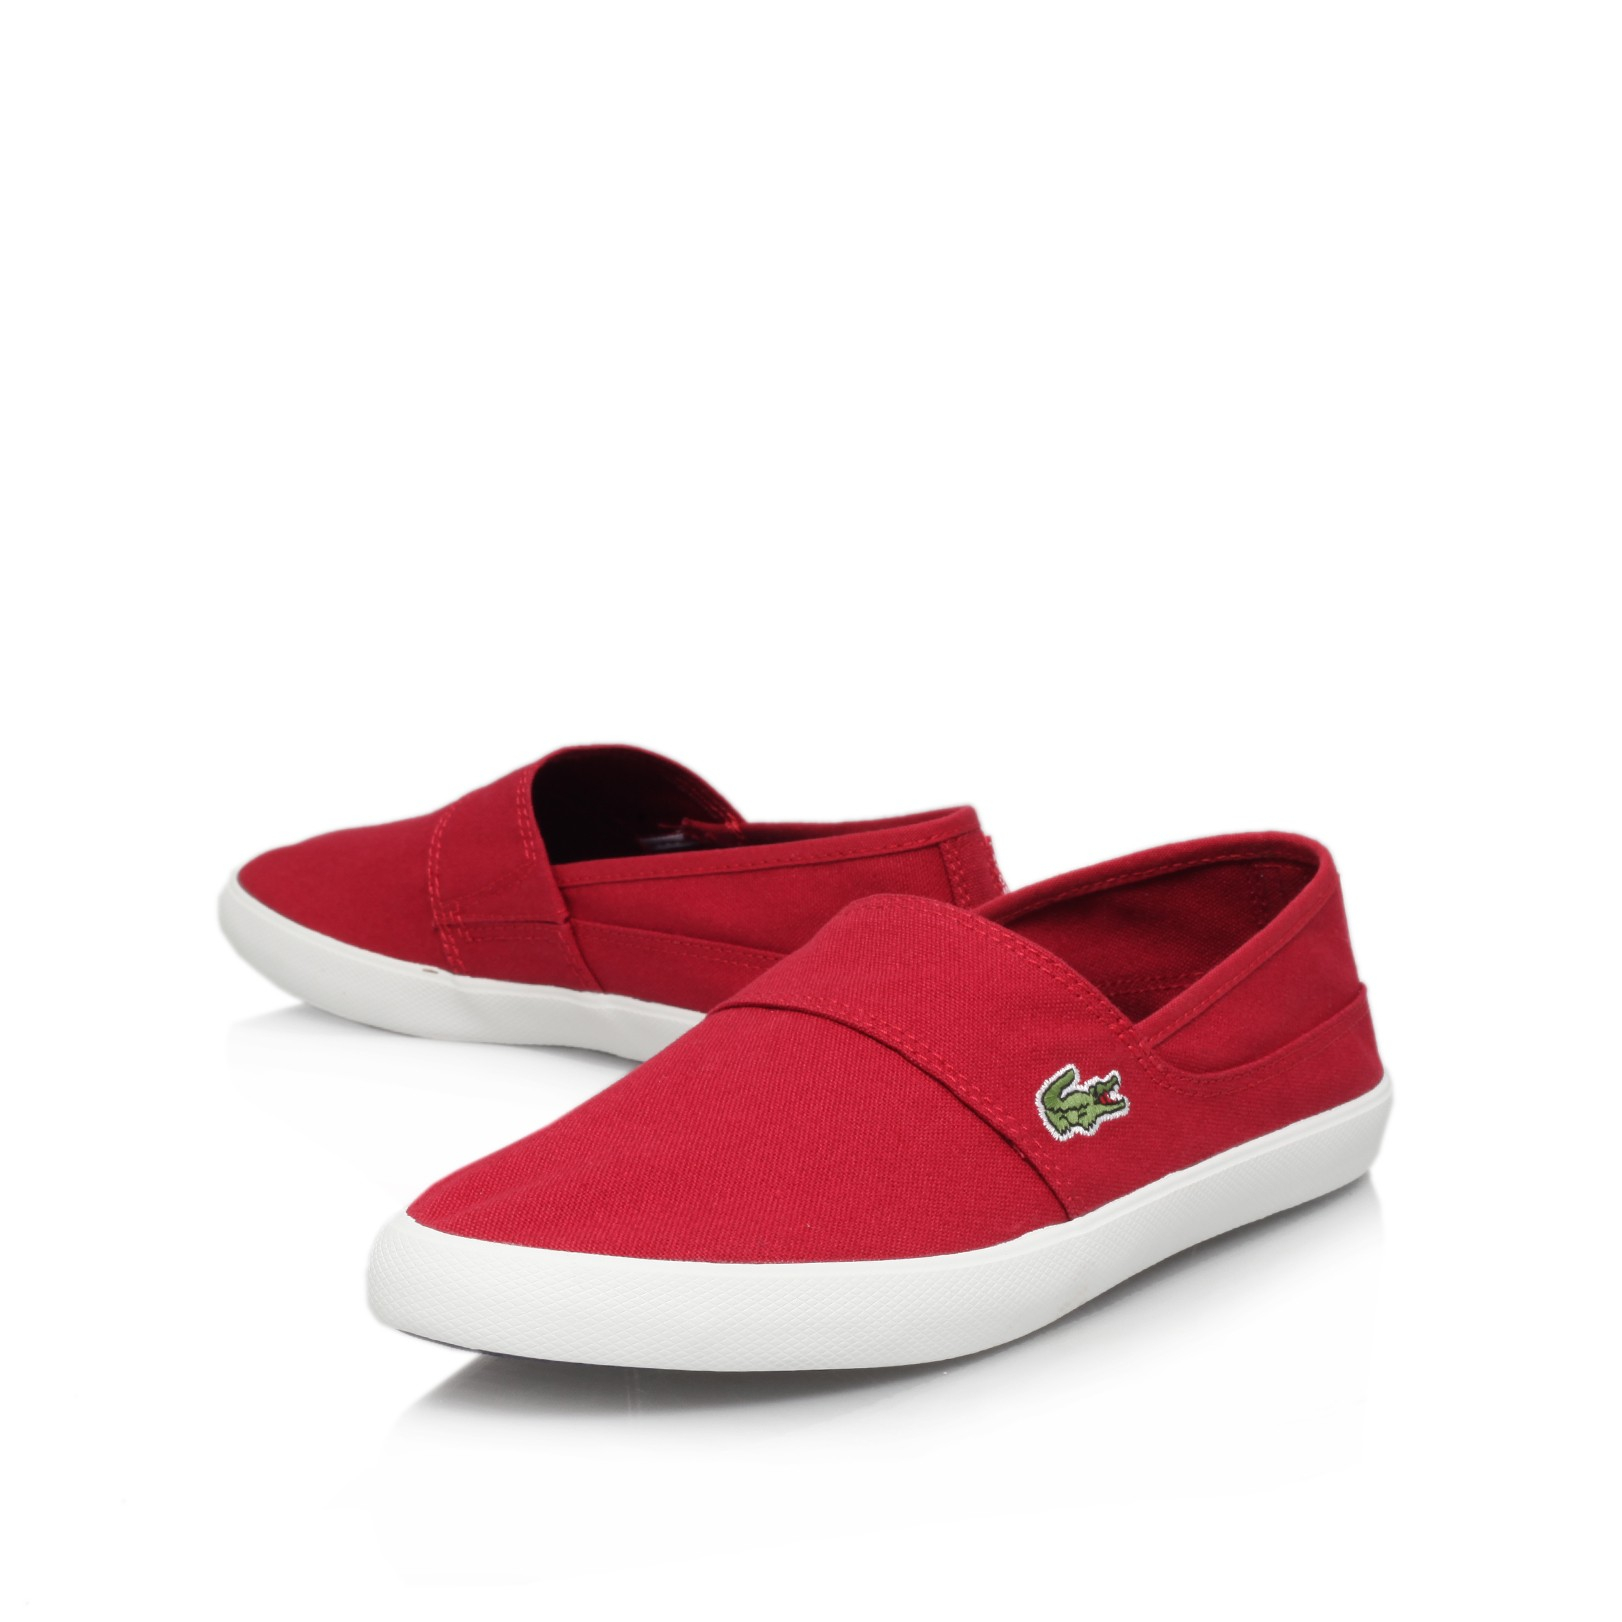 0ae6764fa632 Lacoste Marice Lcr in Red for Men - Lyst